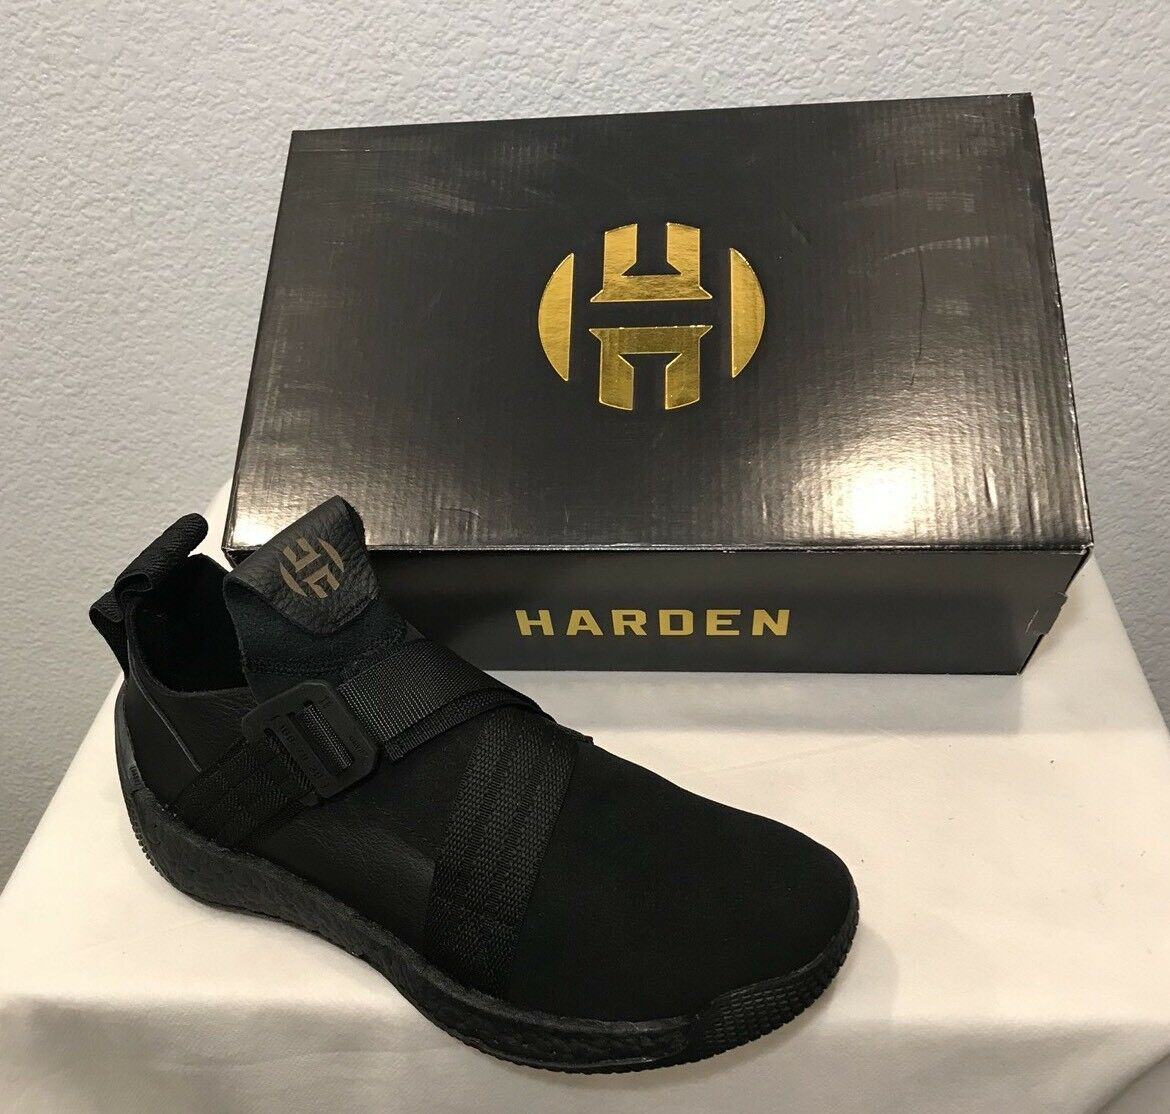 NEW ADIDAS HARDEN LS 2 BUCKLE SHOESBLACK (F33831) MEN'S SIZE 10.5